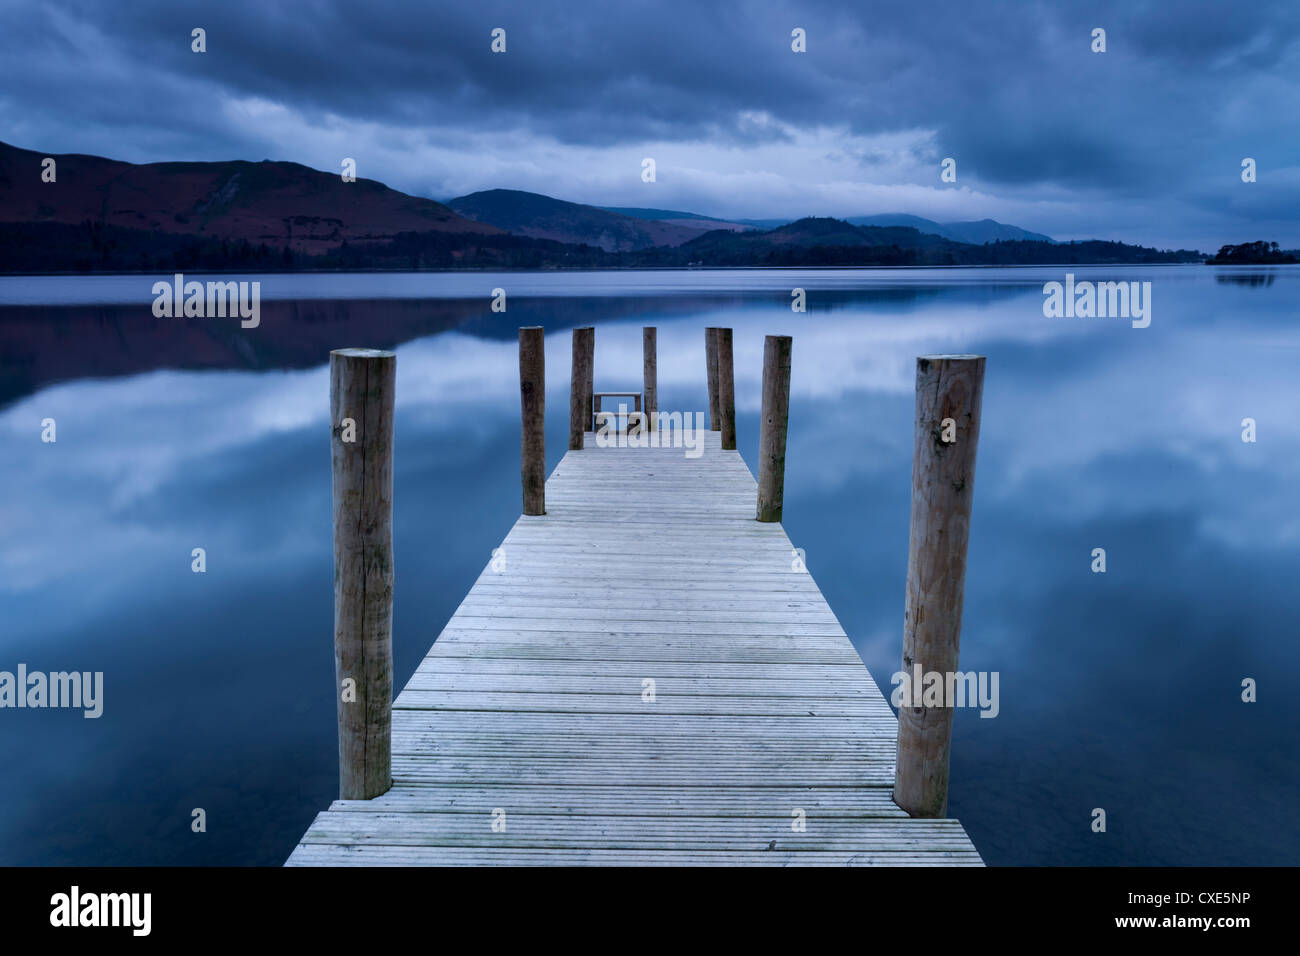 Dawn at Ashness Landing jetty on Derwentwater, Keswick, Lake District National Park, Cumbria, England, United Kingdom, - Stock Image